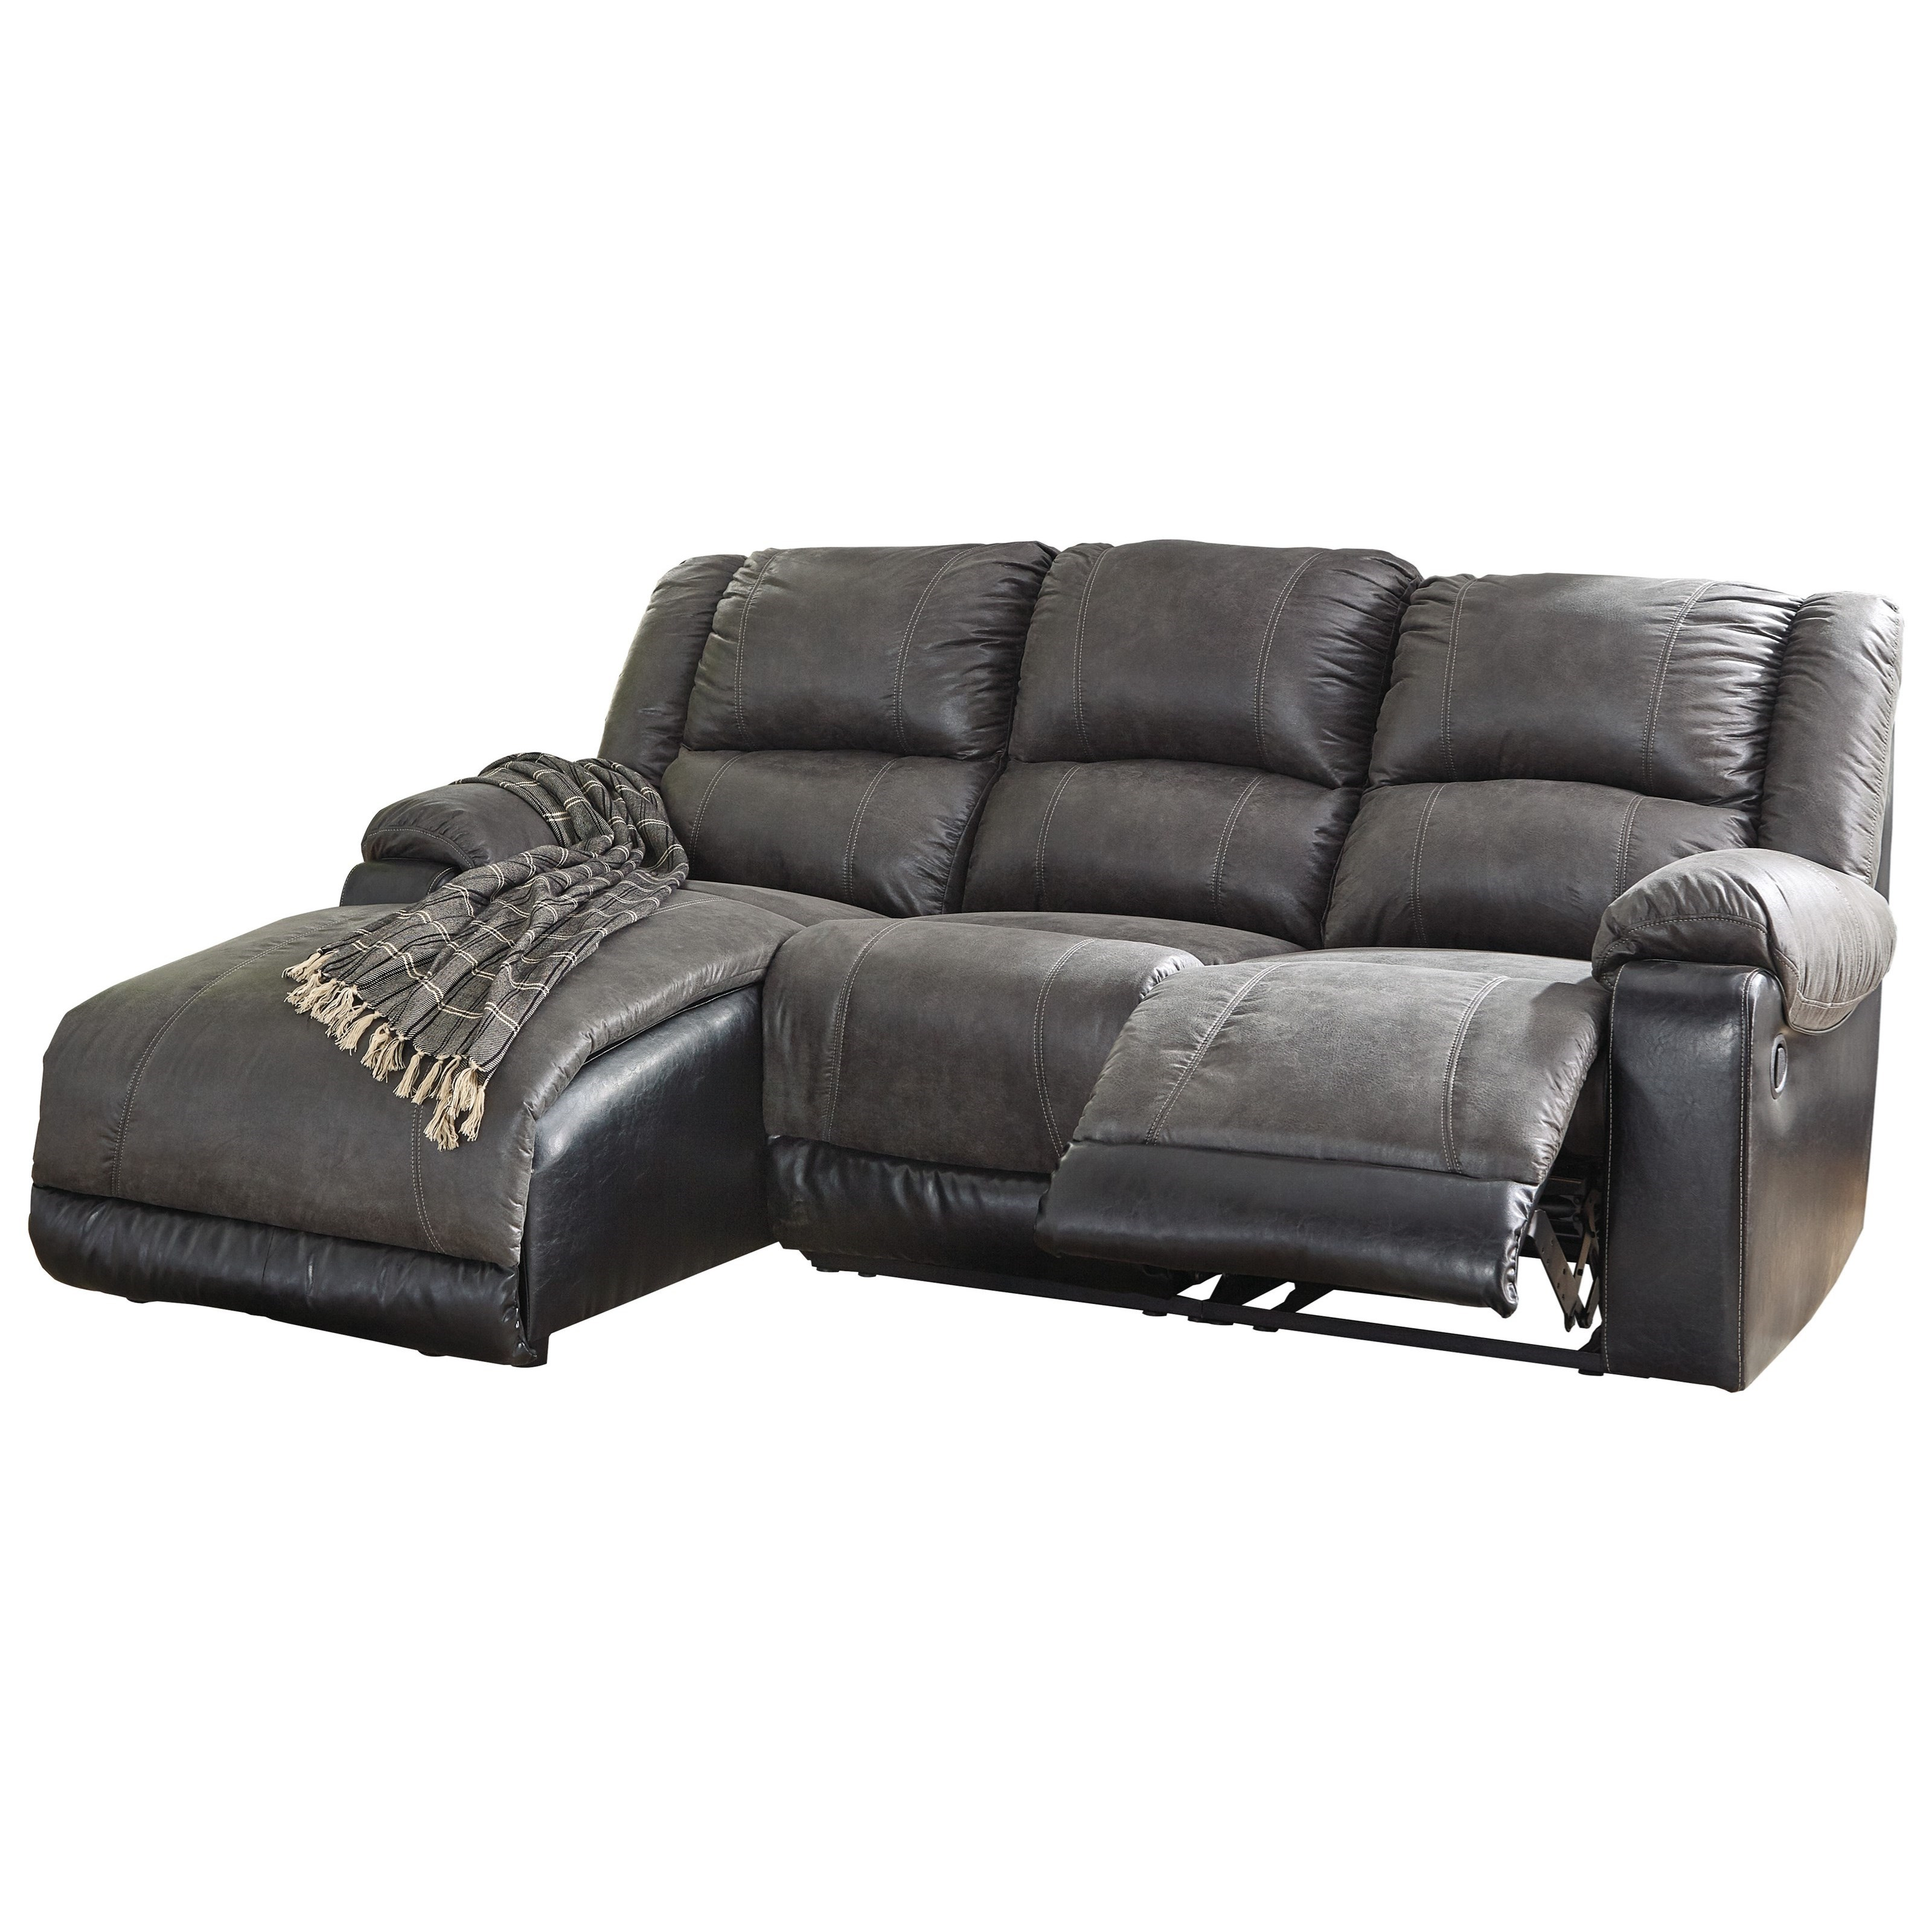 Nantahala Reclining Sofa with Chaise by Signature Design by Ashley at Furniture Barn